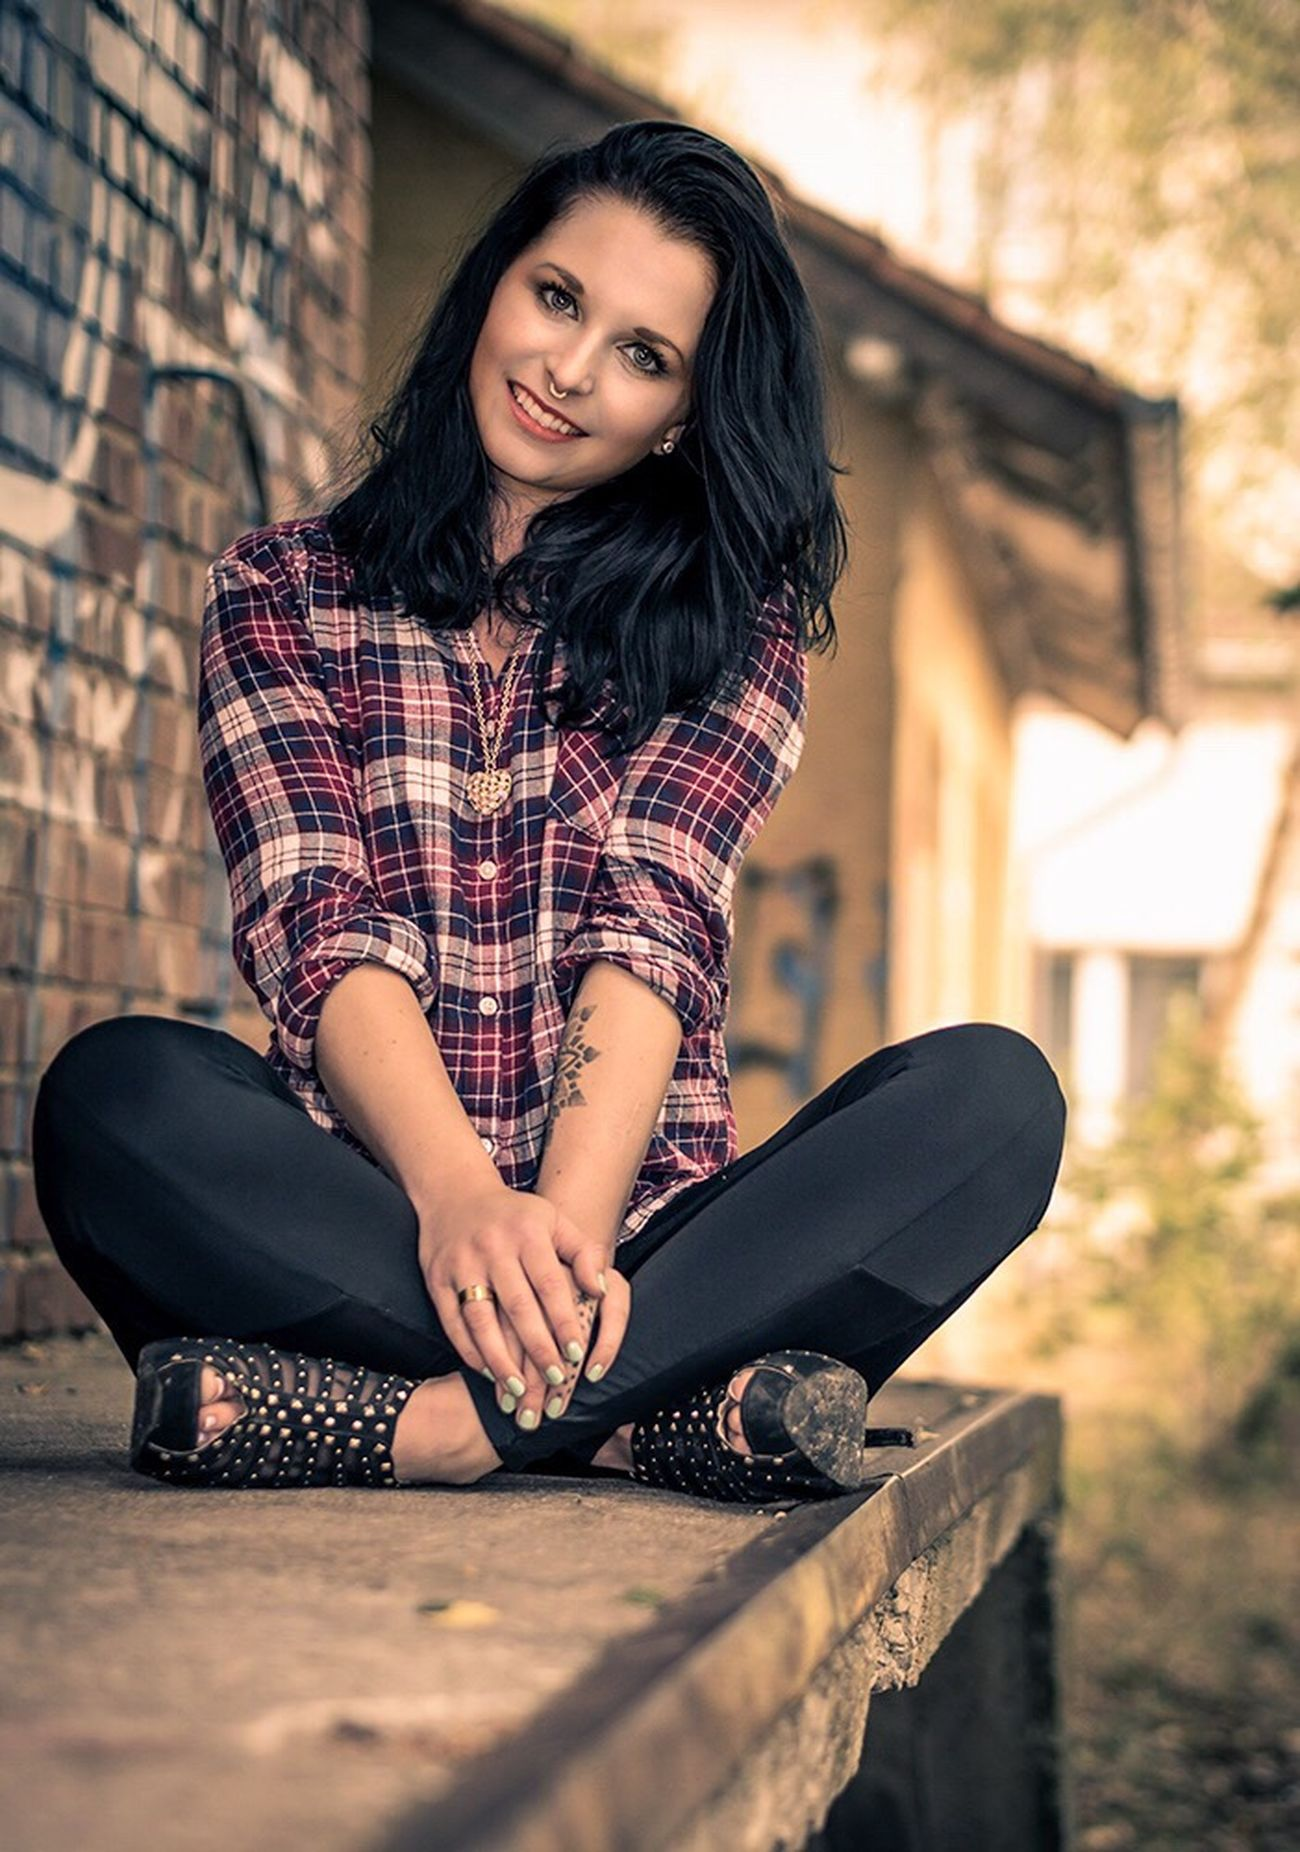 Sitting Vertical Adult Females Person Young Adult Fashion One Person One Woman Only People Only Women City Human Body Part Young Women Portrait One Young Woman Only Outdoors Day